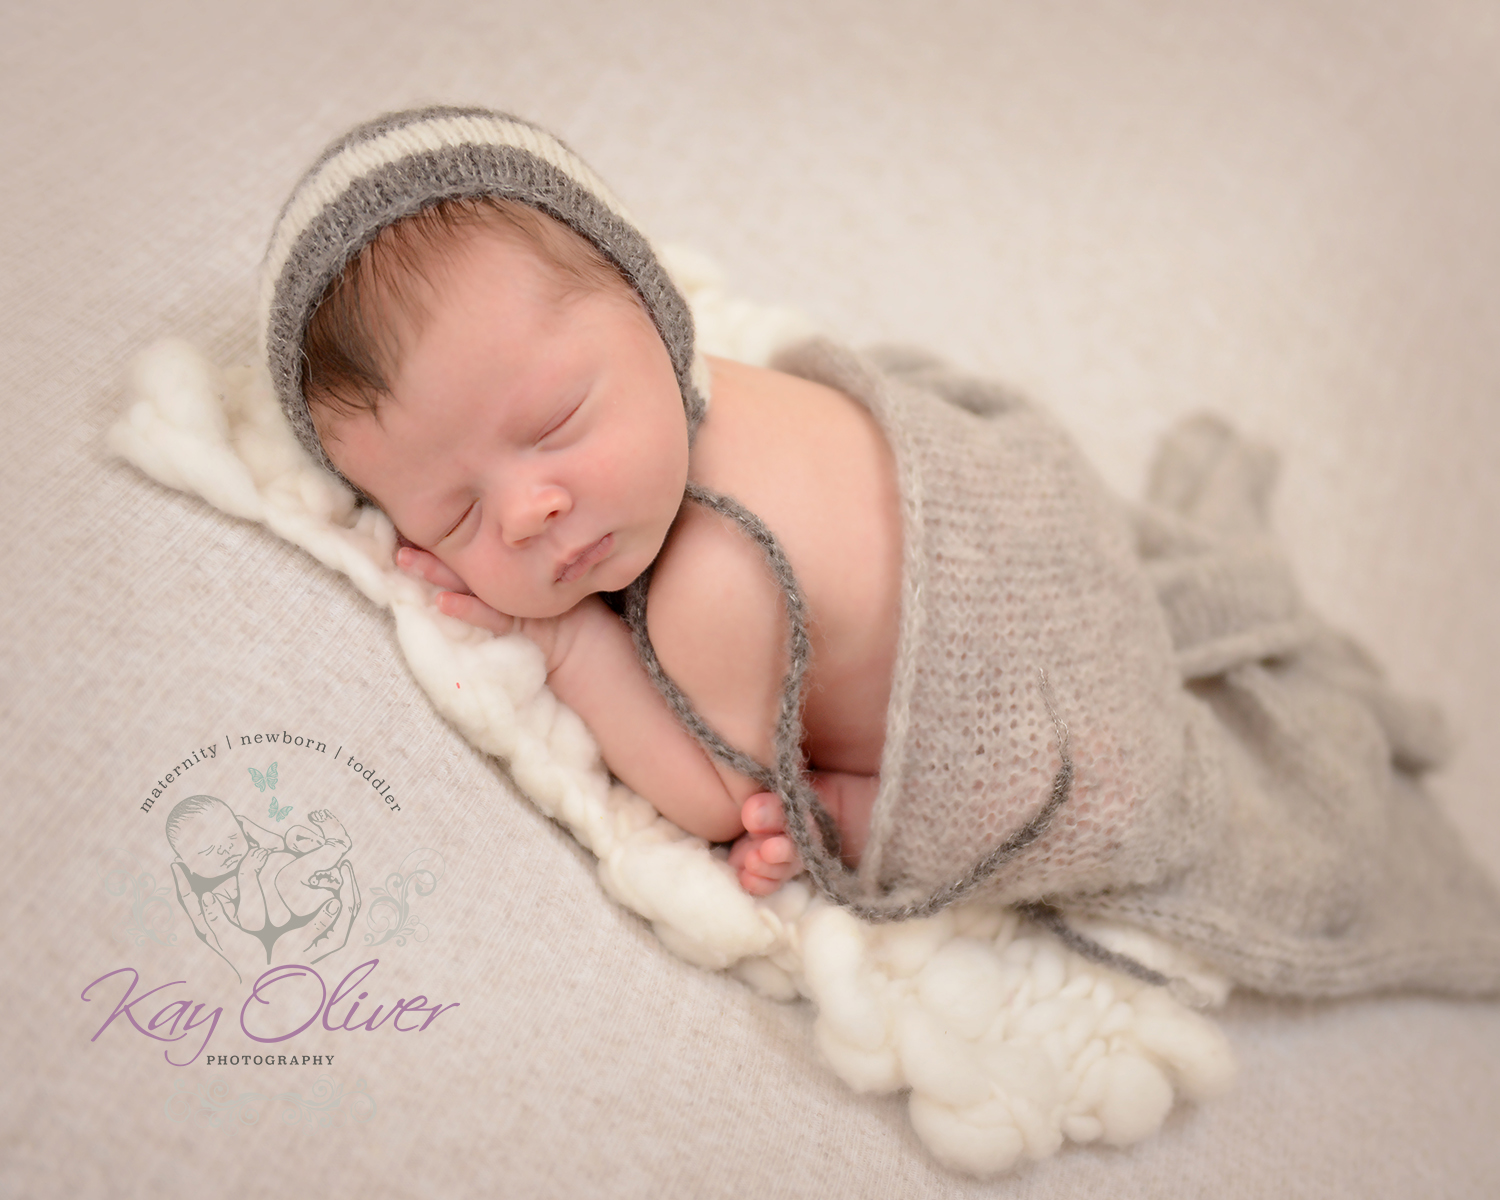 Newborn Photography Leicestershire